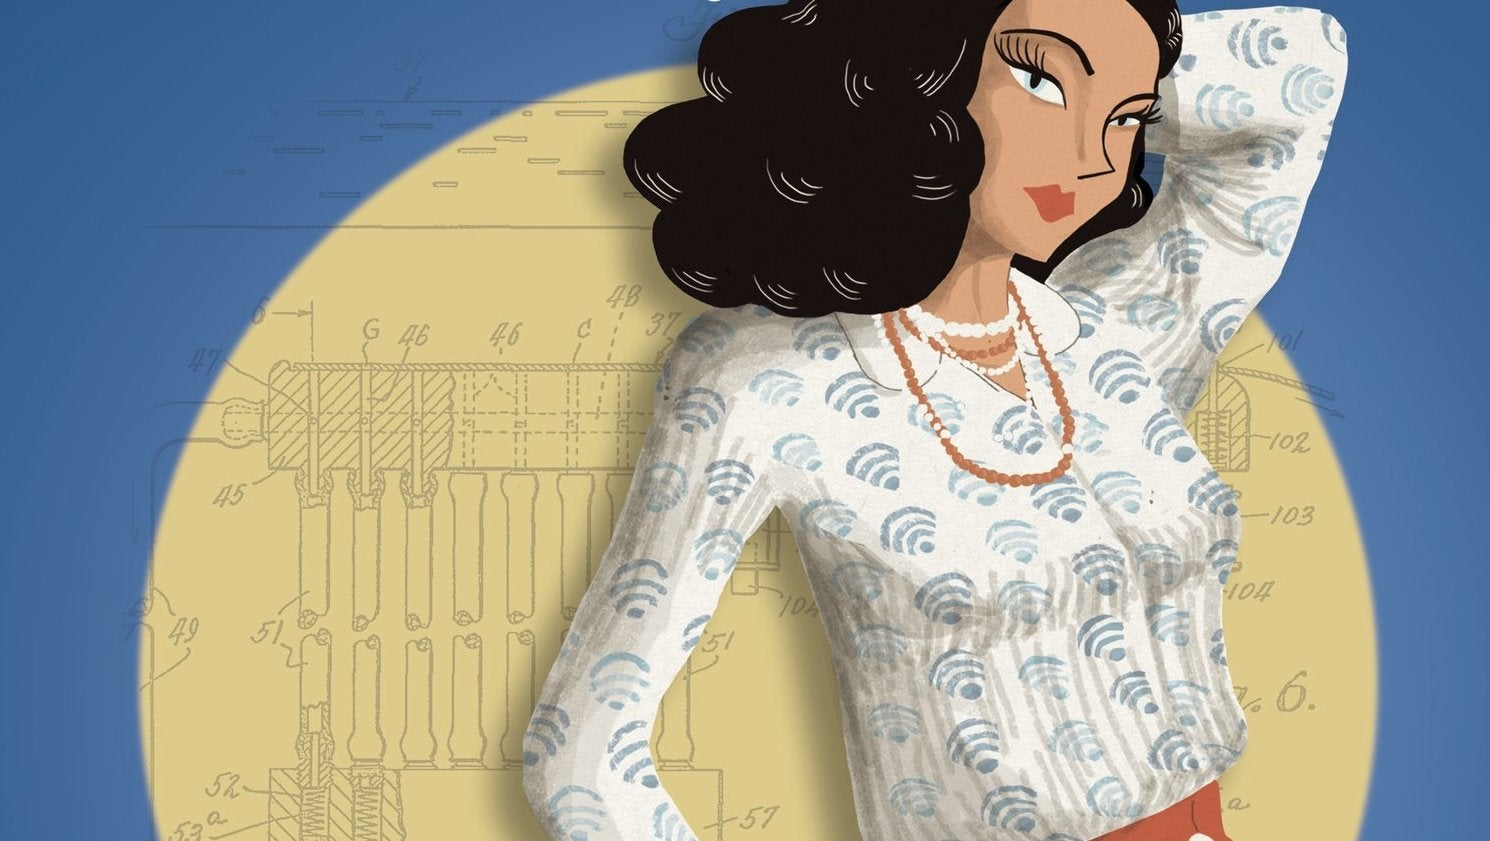 Celebrate Hedy Lamarr's Birthday With This Gorgeous Graphic Novelisation Of Her Life